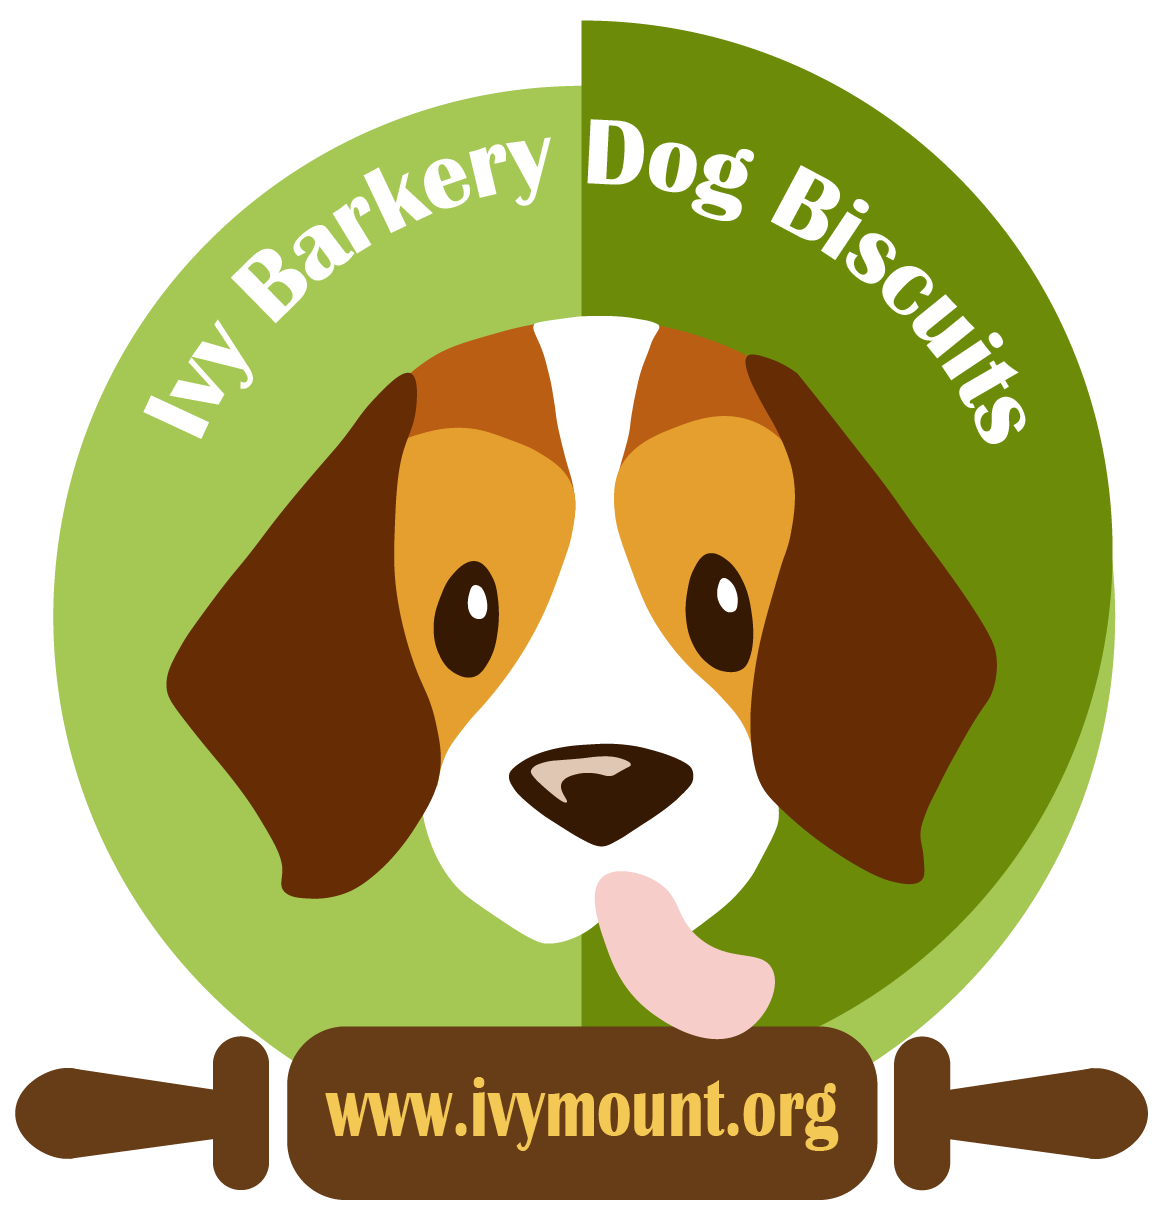 Dog biscuit clipart banner library stock Ivy Barkery - The Ivymount School banner library stock